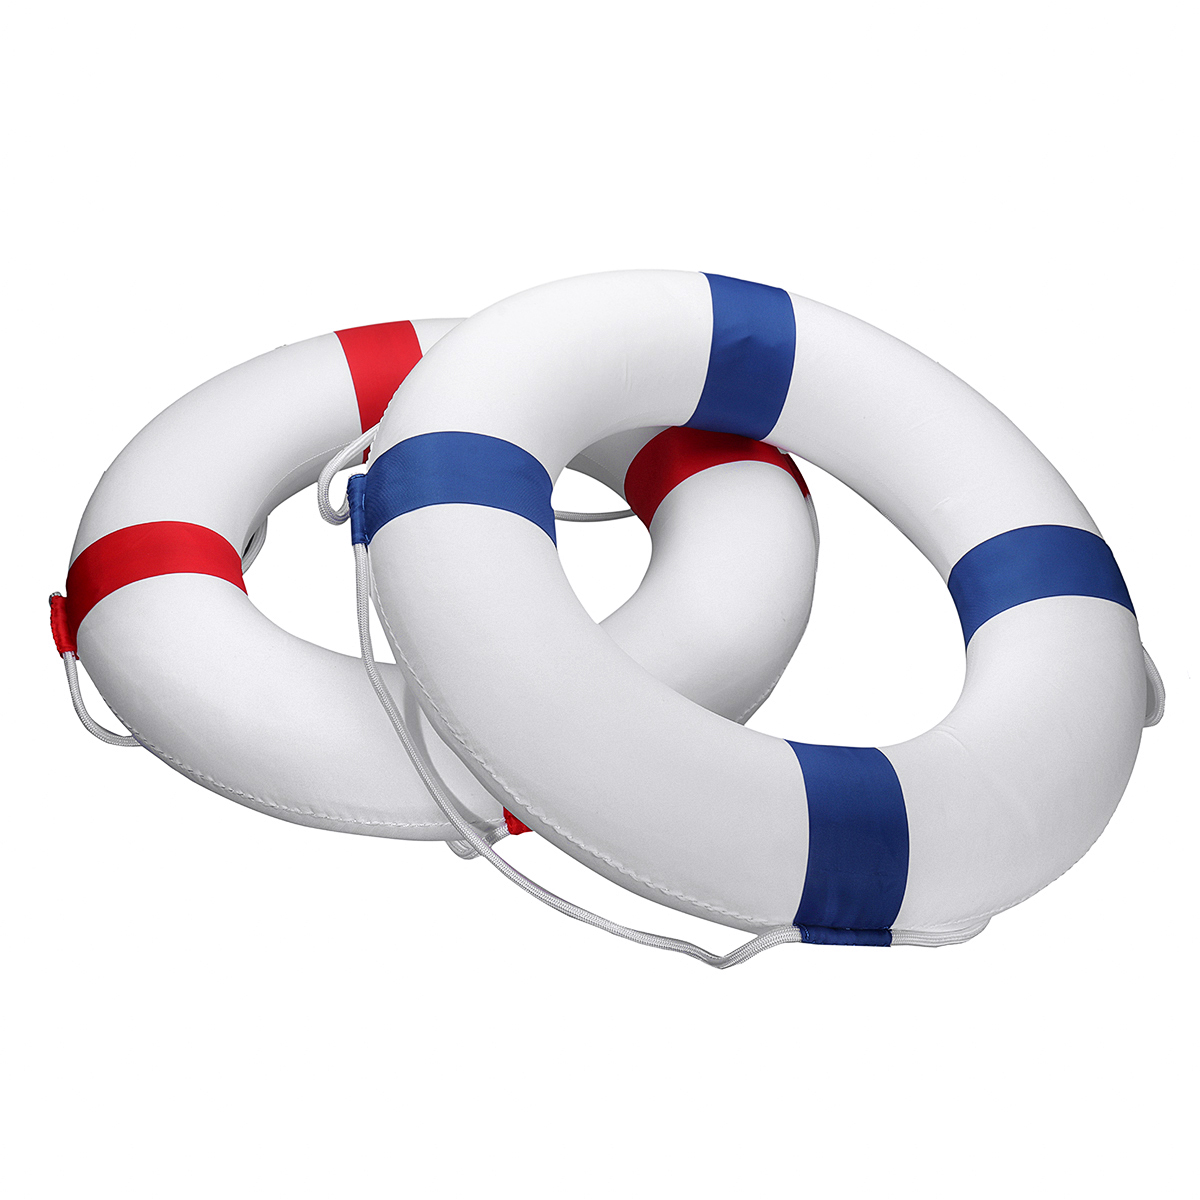 Inflatable Swimming Ring Kids Children Water Beach Pool Toy Gift